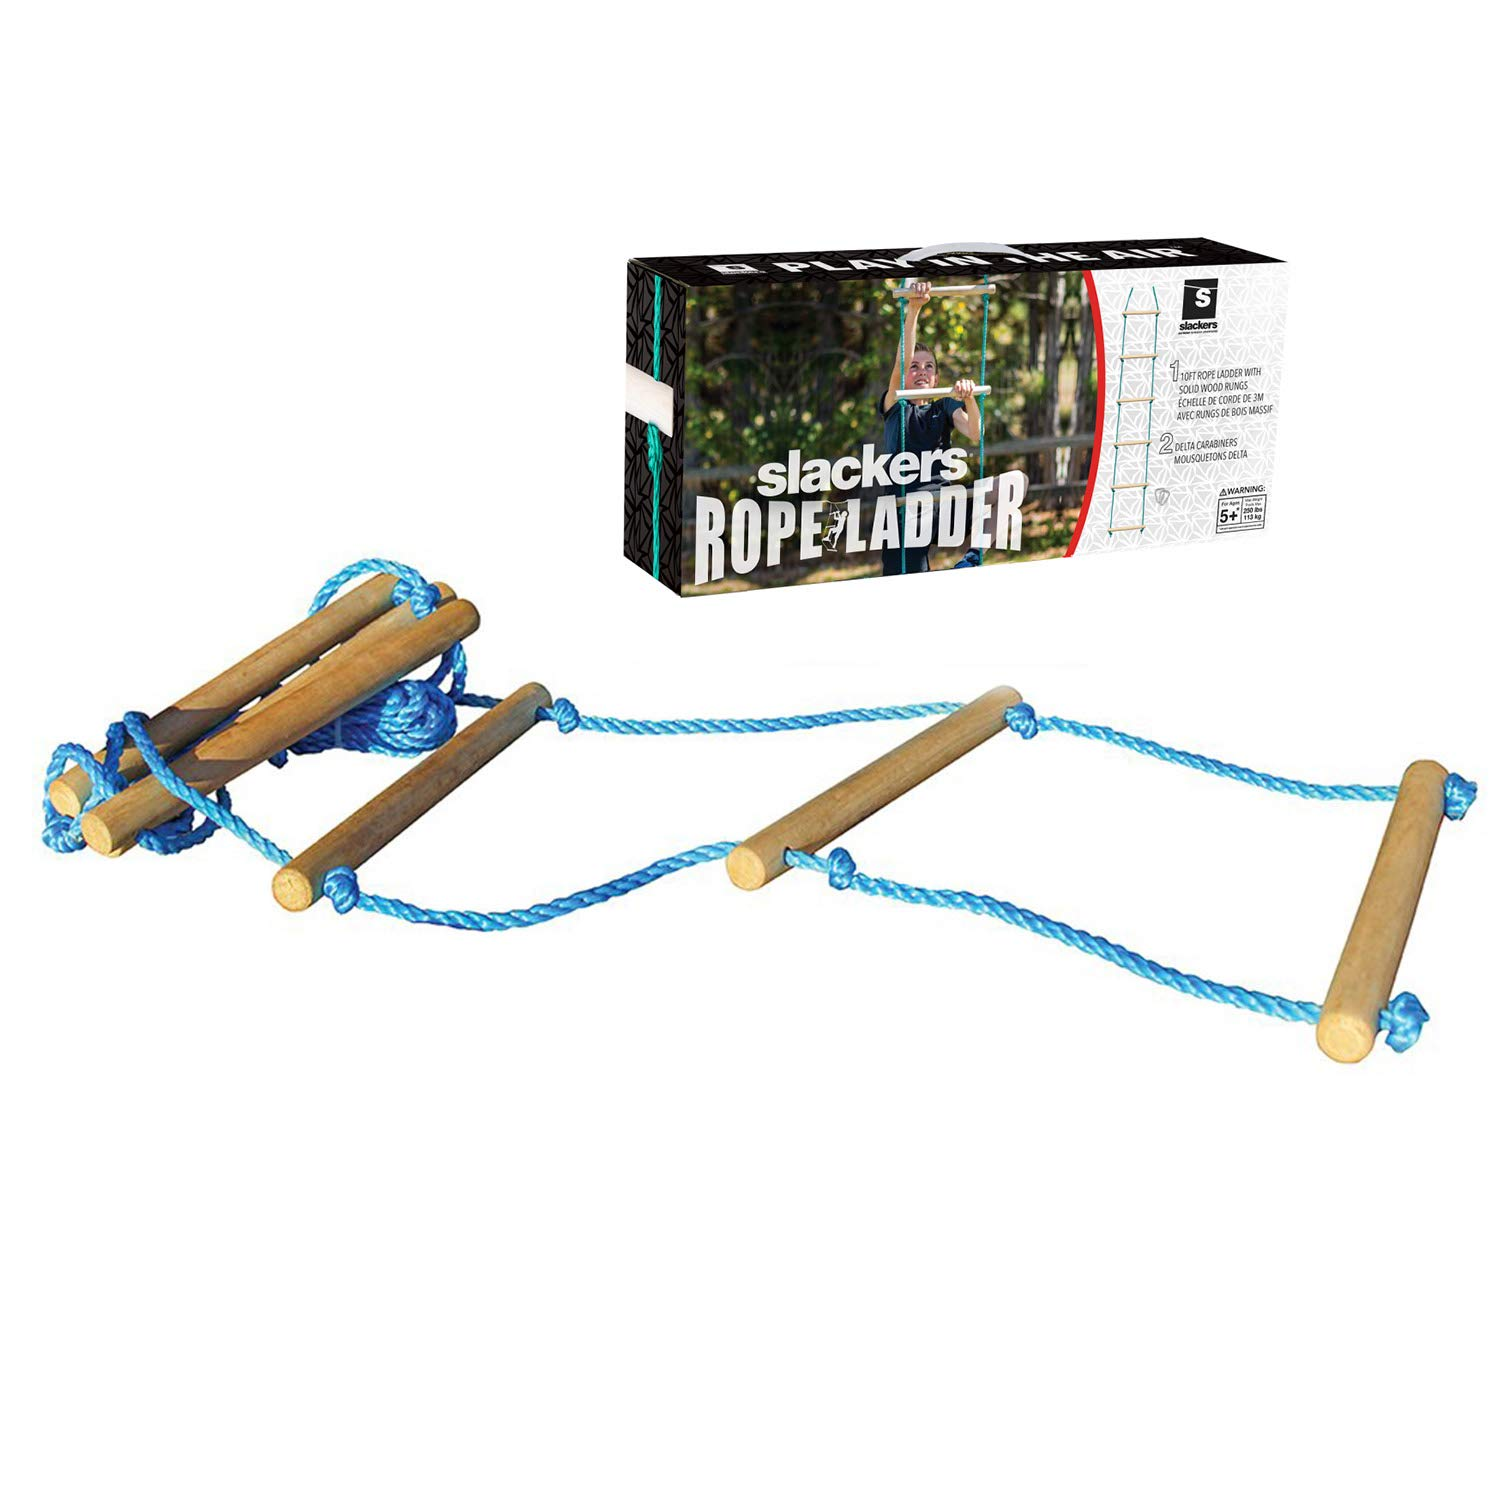 Slackers Rope Ladder, Teal, 10 Feet